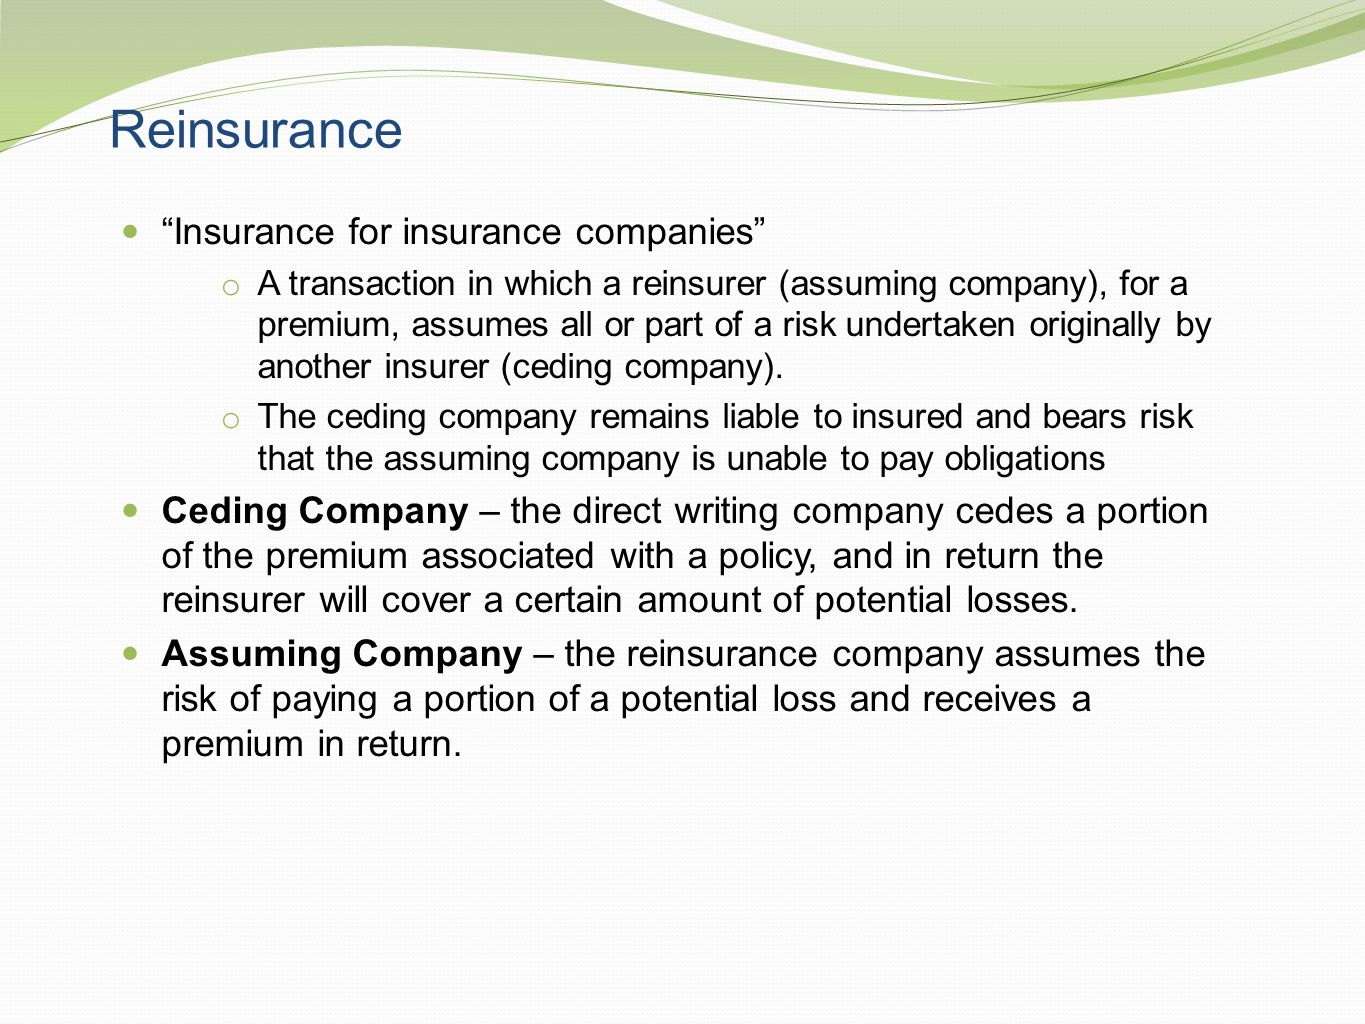 Reinsurance Insurance for insurance companies